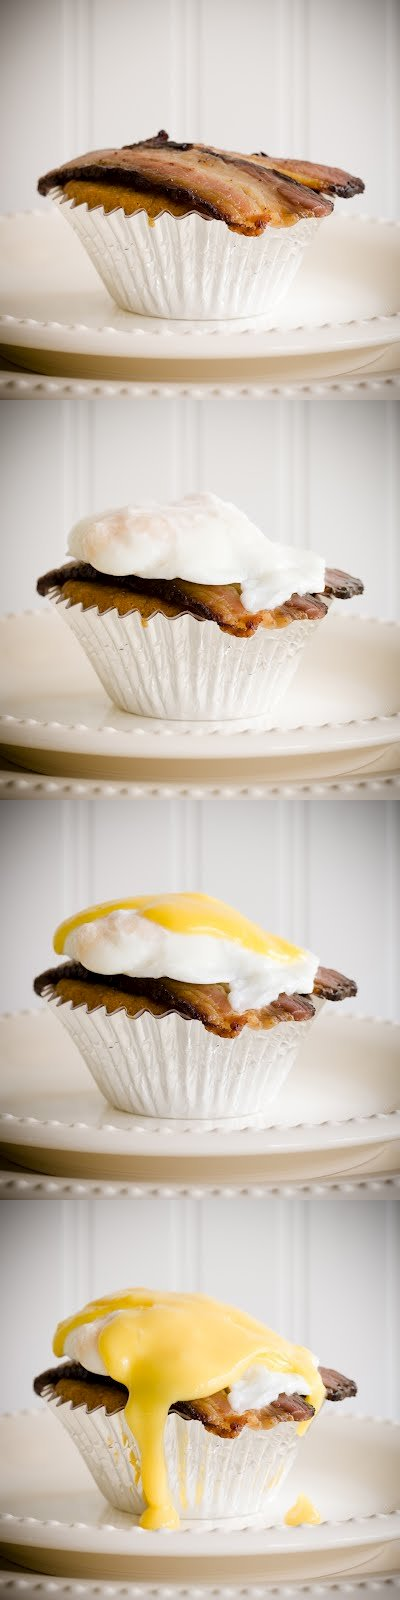 Maple Cupcakes Topped with Black Forest Bacon, Poached Eggs, and Maple Hollandaise Sauce | Cupcake Project